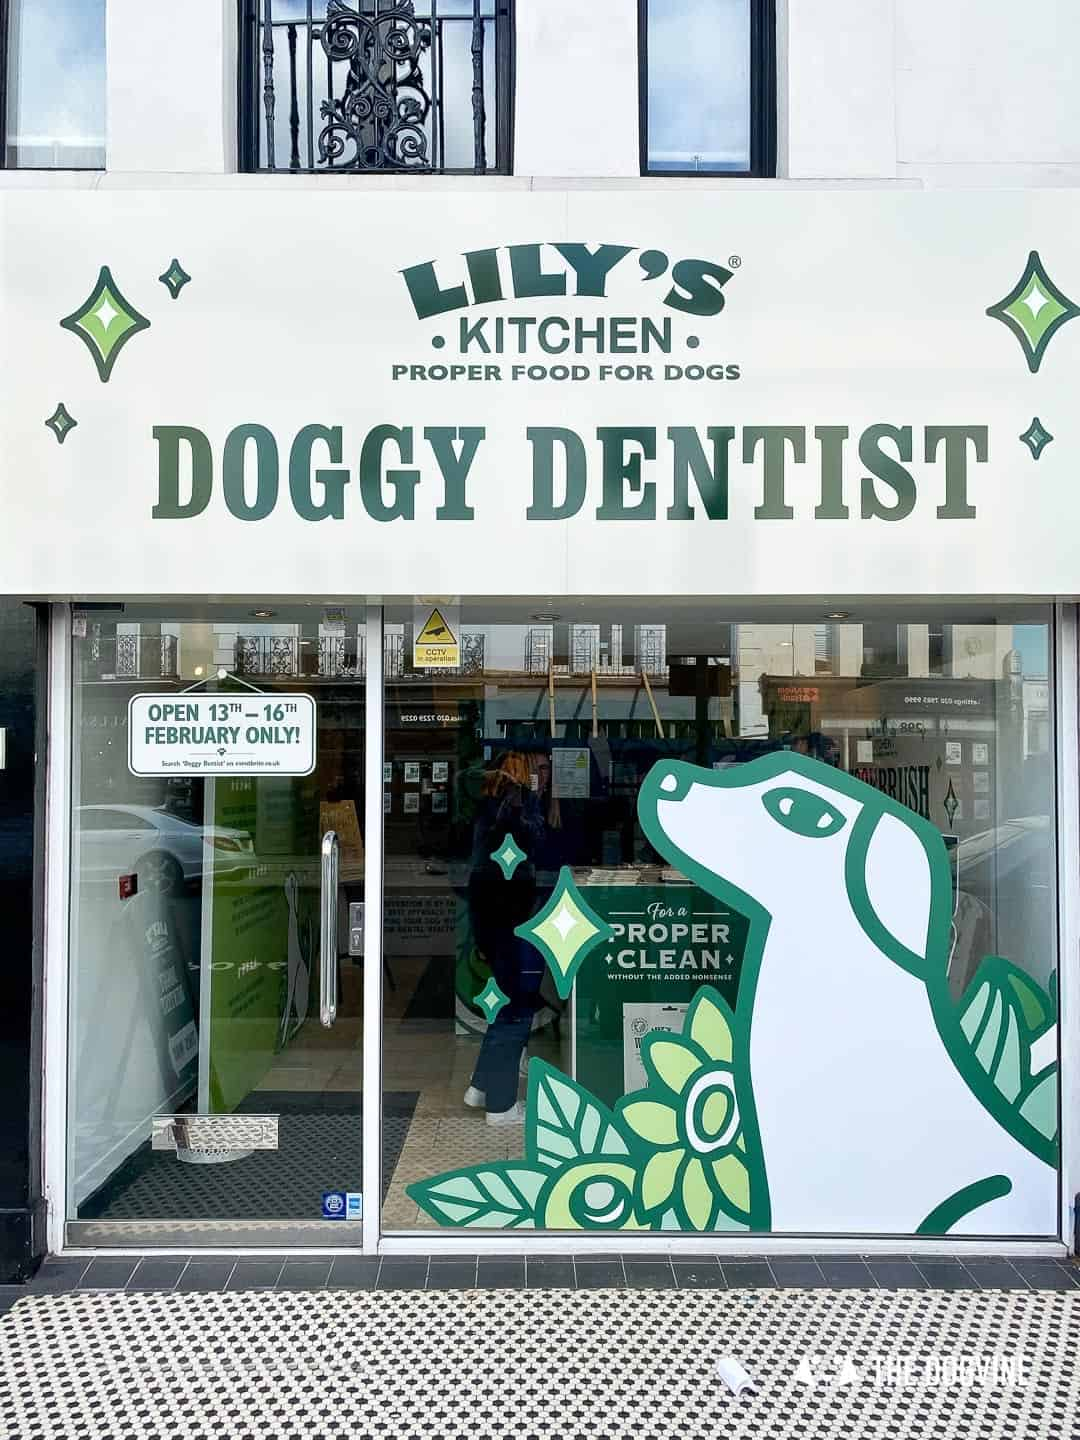 Lily's Kitchen Doggy Dentist Hollywoof Smile 41